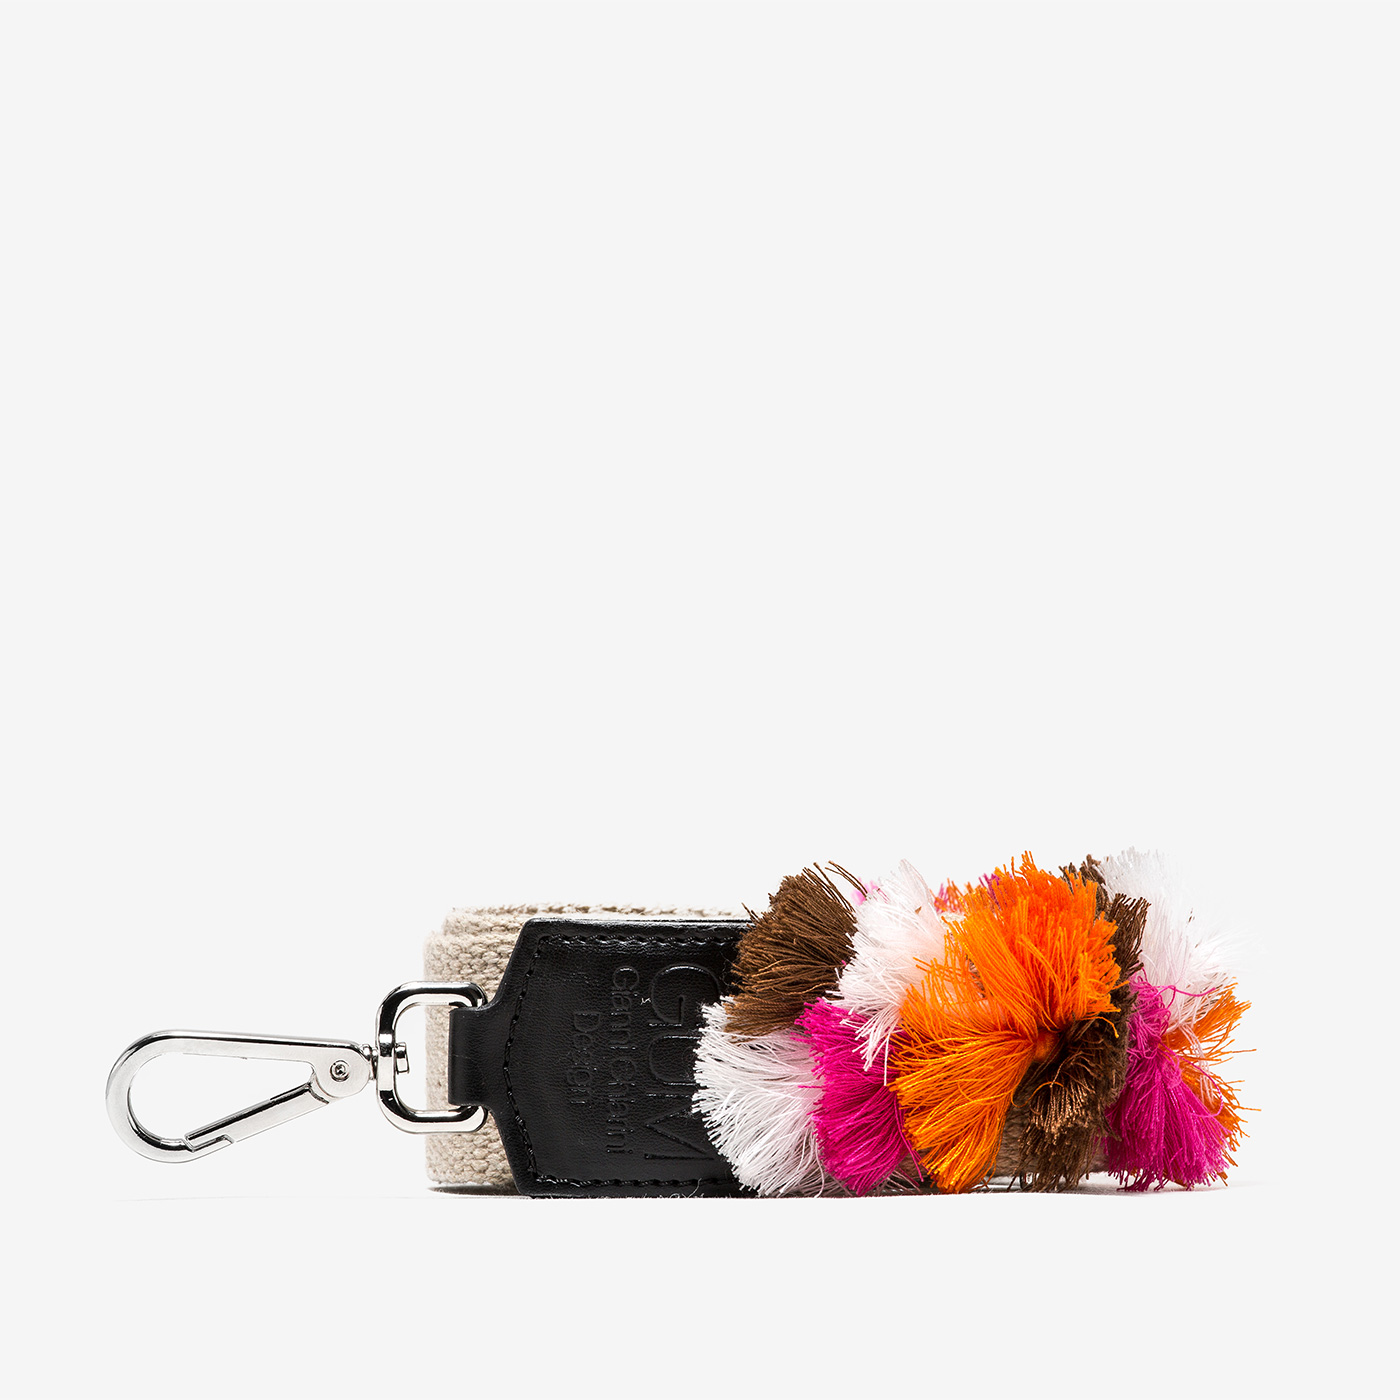 GUM: FIXED-SIZE SHOULDER STRAP WITH TASSELS